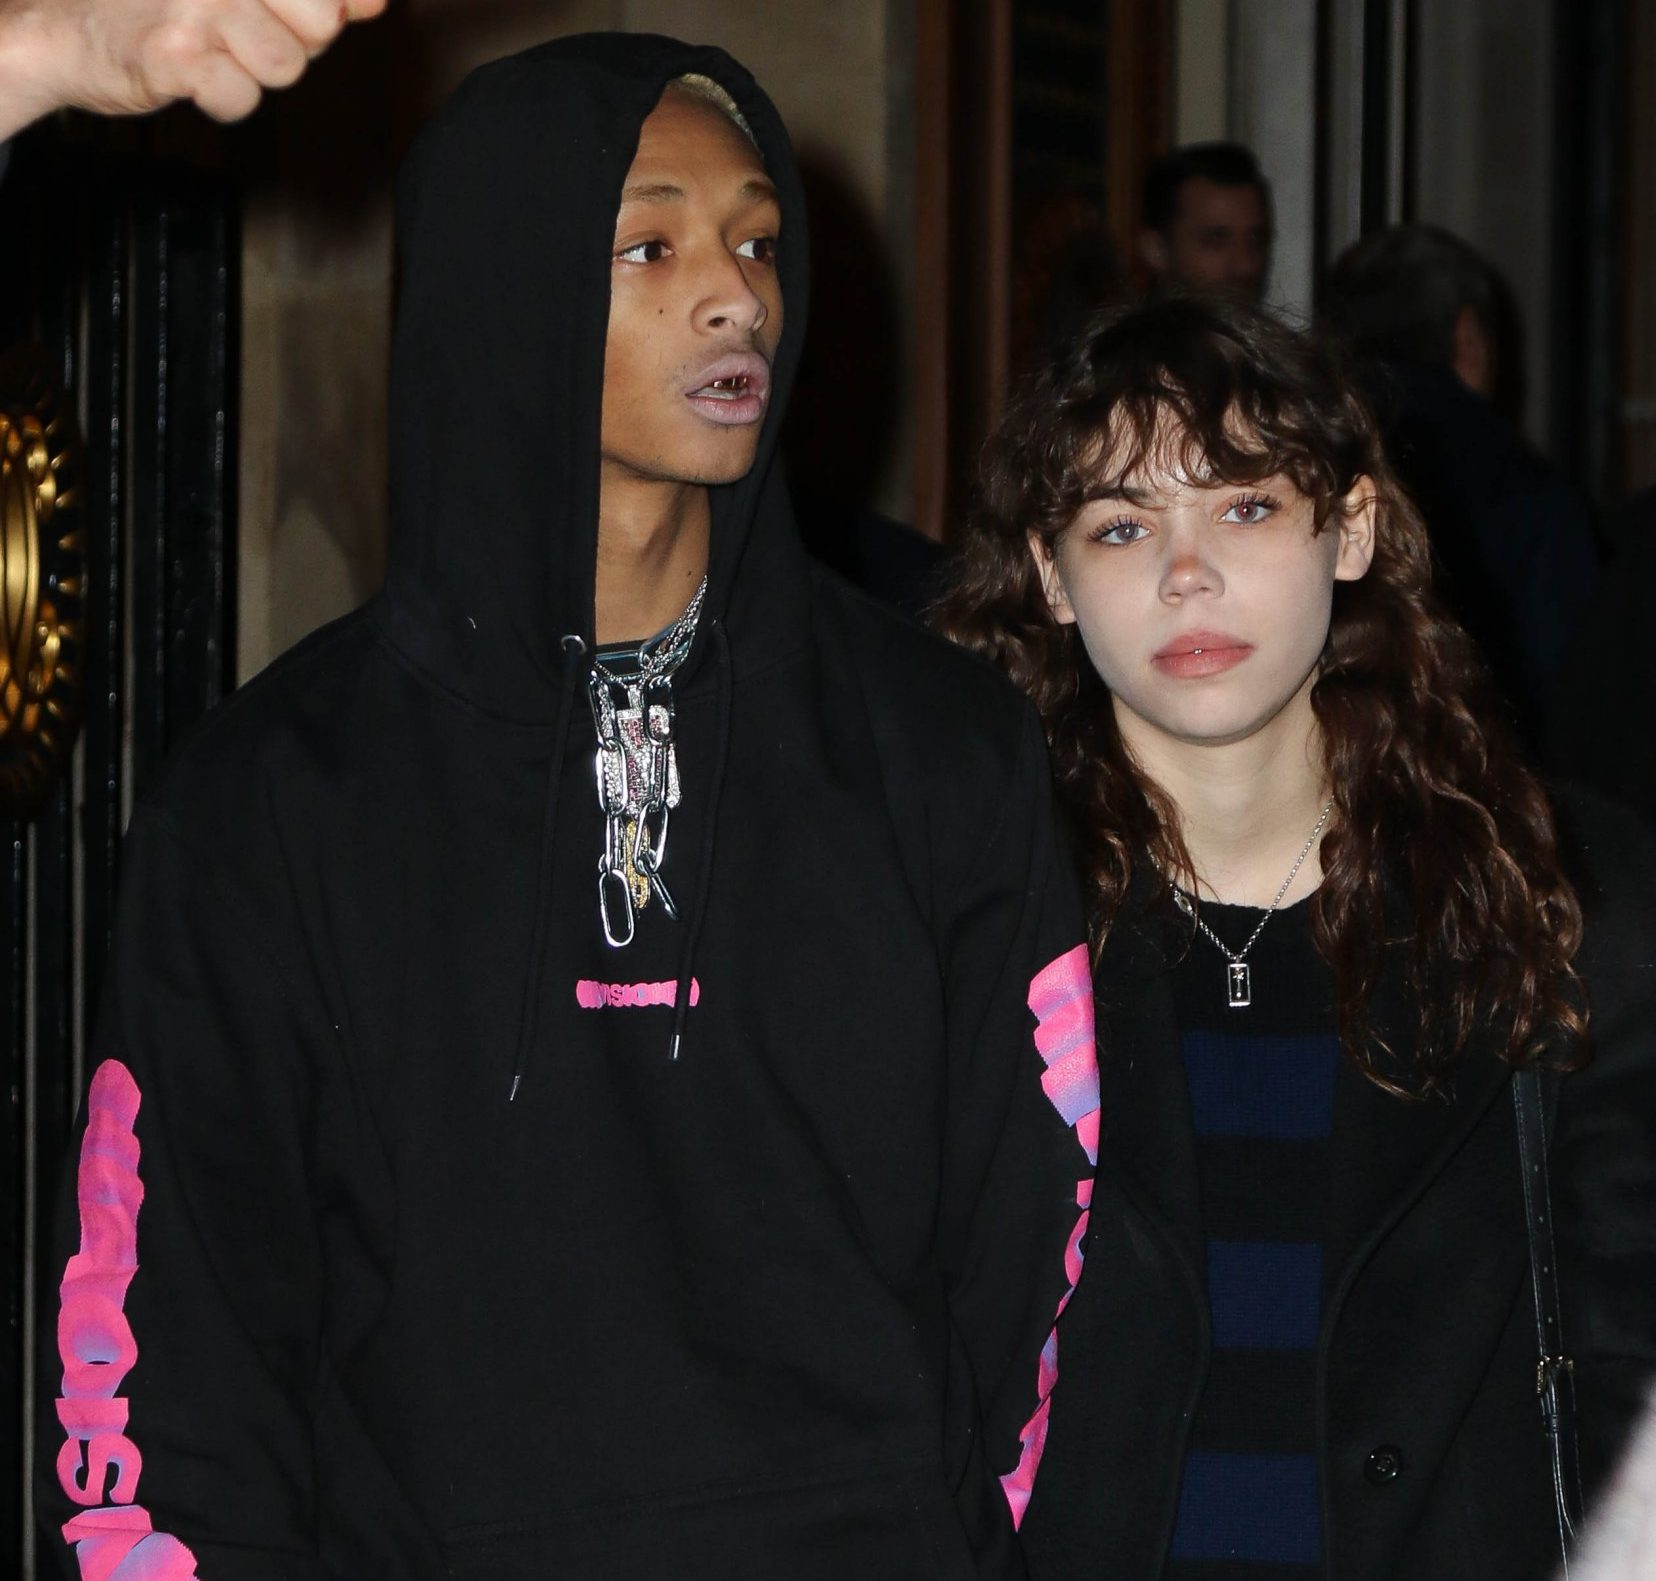 People in Paris during Paris Fashion Week Pictured: Jaden Smith Ref: SPL5057055 220119 NON-EXCLUSIVE Picture by: Starface / SplashNews.com Splash News and Pictures Los Angeles: 310-821-2666 New York: 212-619-2666 London: 0207 644 7656 Milan: 02 4399 8577 photodesk@splashnews.com United Arab Emirates Rights, Argentina Rights, Australia Rights, Austria Rights, Brazil Rights, Canada Rights, China Rights, Denmark Rights, Ireland Rights, Finland Rights, Greenland Rights, Greece Rights, Guatemala Rights, Haiti Rights, Hong Kong Rights, Croatia Rights, Indonesia Rights, Israel Rights, Japan Rights, Morocco Rights, Mexico Rights, Norway Rights, New Zealand Rights, Peru Rights, Portugal Rights, Romania Rights, Philippines Rights, Russia Rights, Singapore Rights, Sweden Rights, Thailand Rights, Taiwan Rights, United Kingdom Rights, United States of America Rights